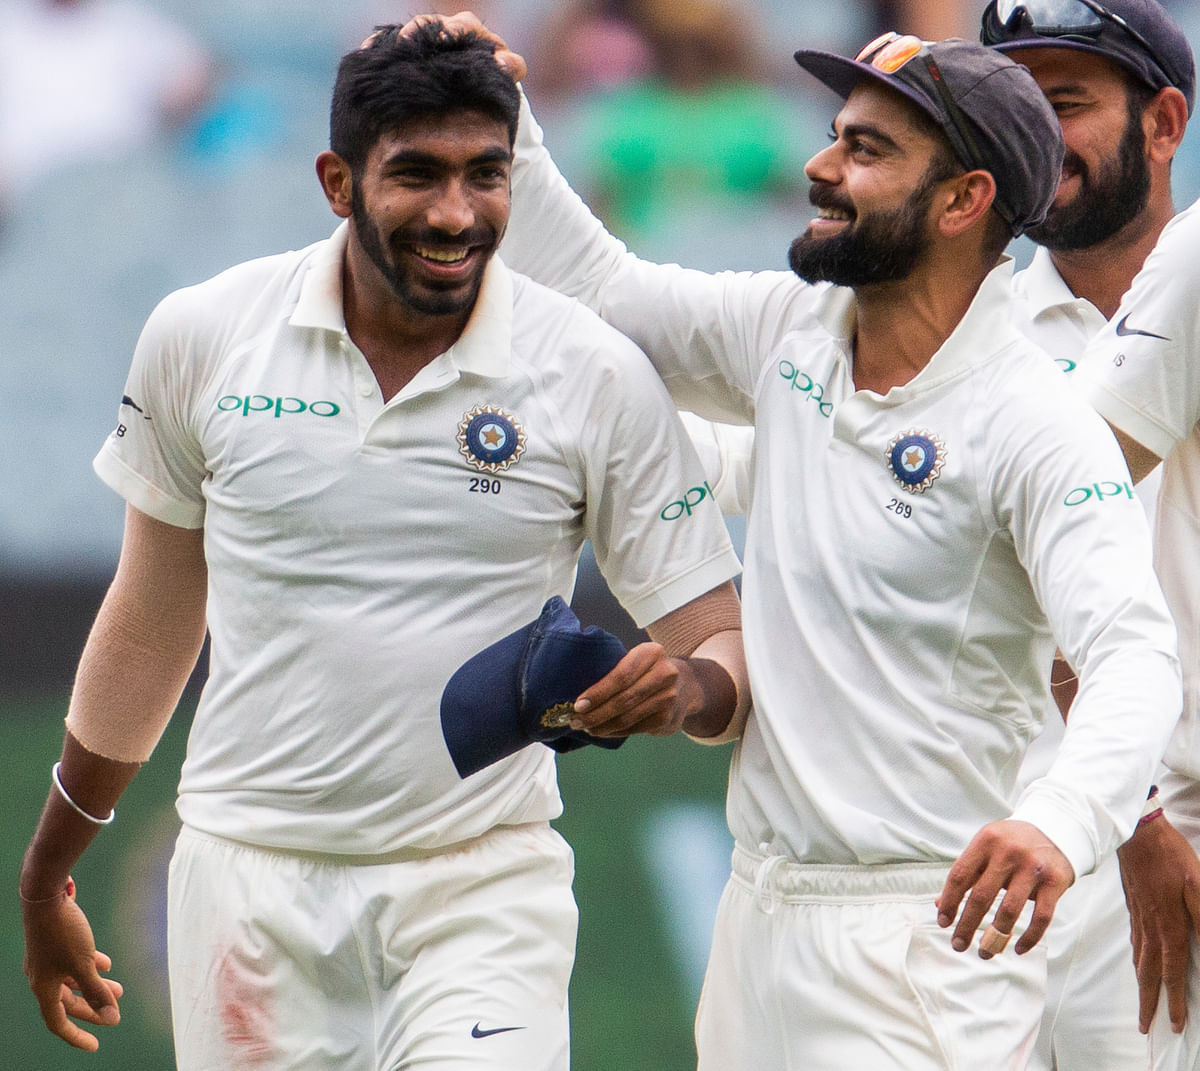 Jasprit Bumrah registered the best figures for an Indian pacer in a Test in Australia with a match haul of 9/86